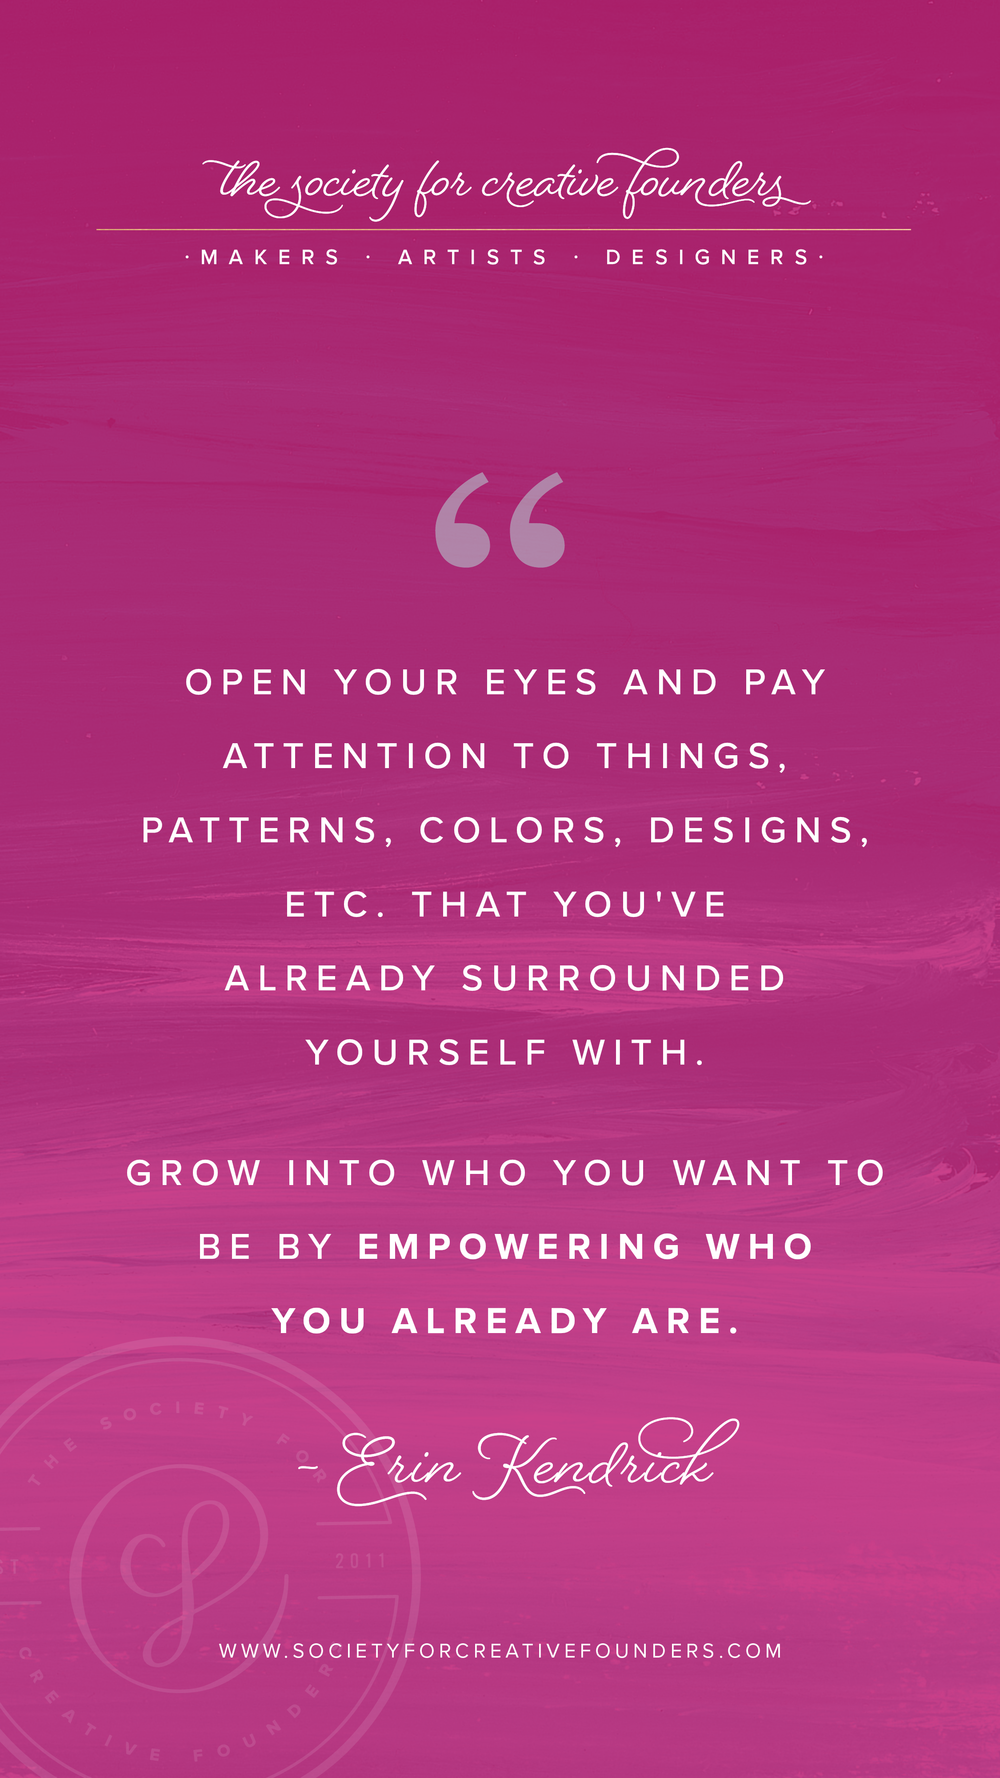 Empower who you already are. Inspiring words by Erin Kendrick of Erin is Creative, Fall 2018 Creative Founders Conference Speaker